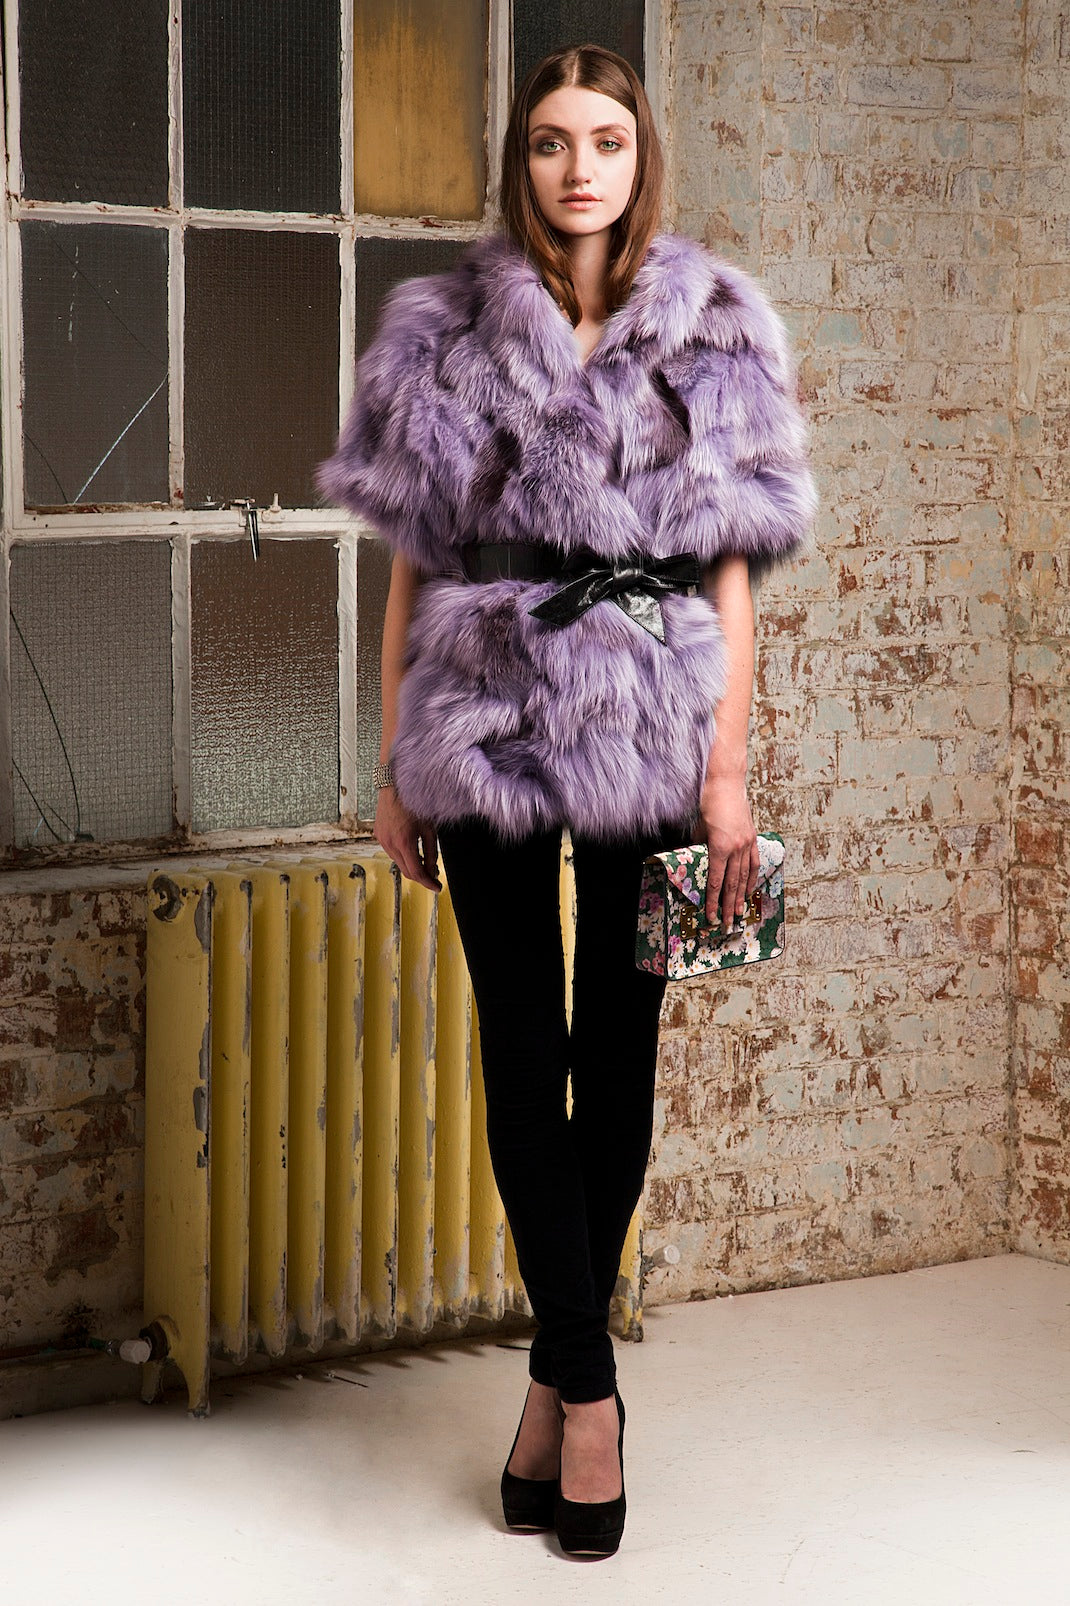 donna ida, london fashion, london style, purple fur, skinny jeans, black jeans, coat, belt, bag, shoes